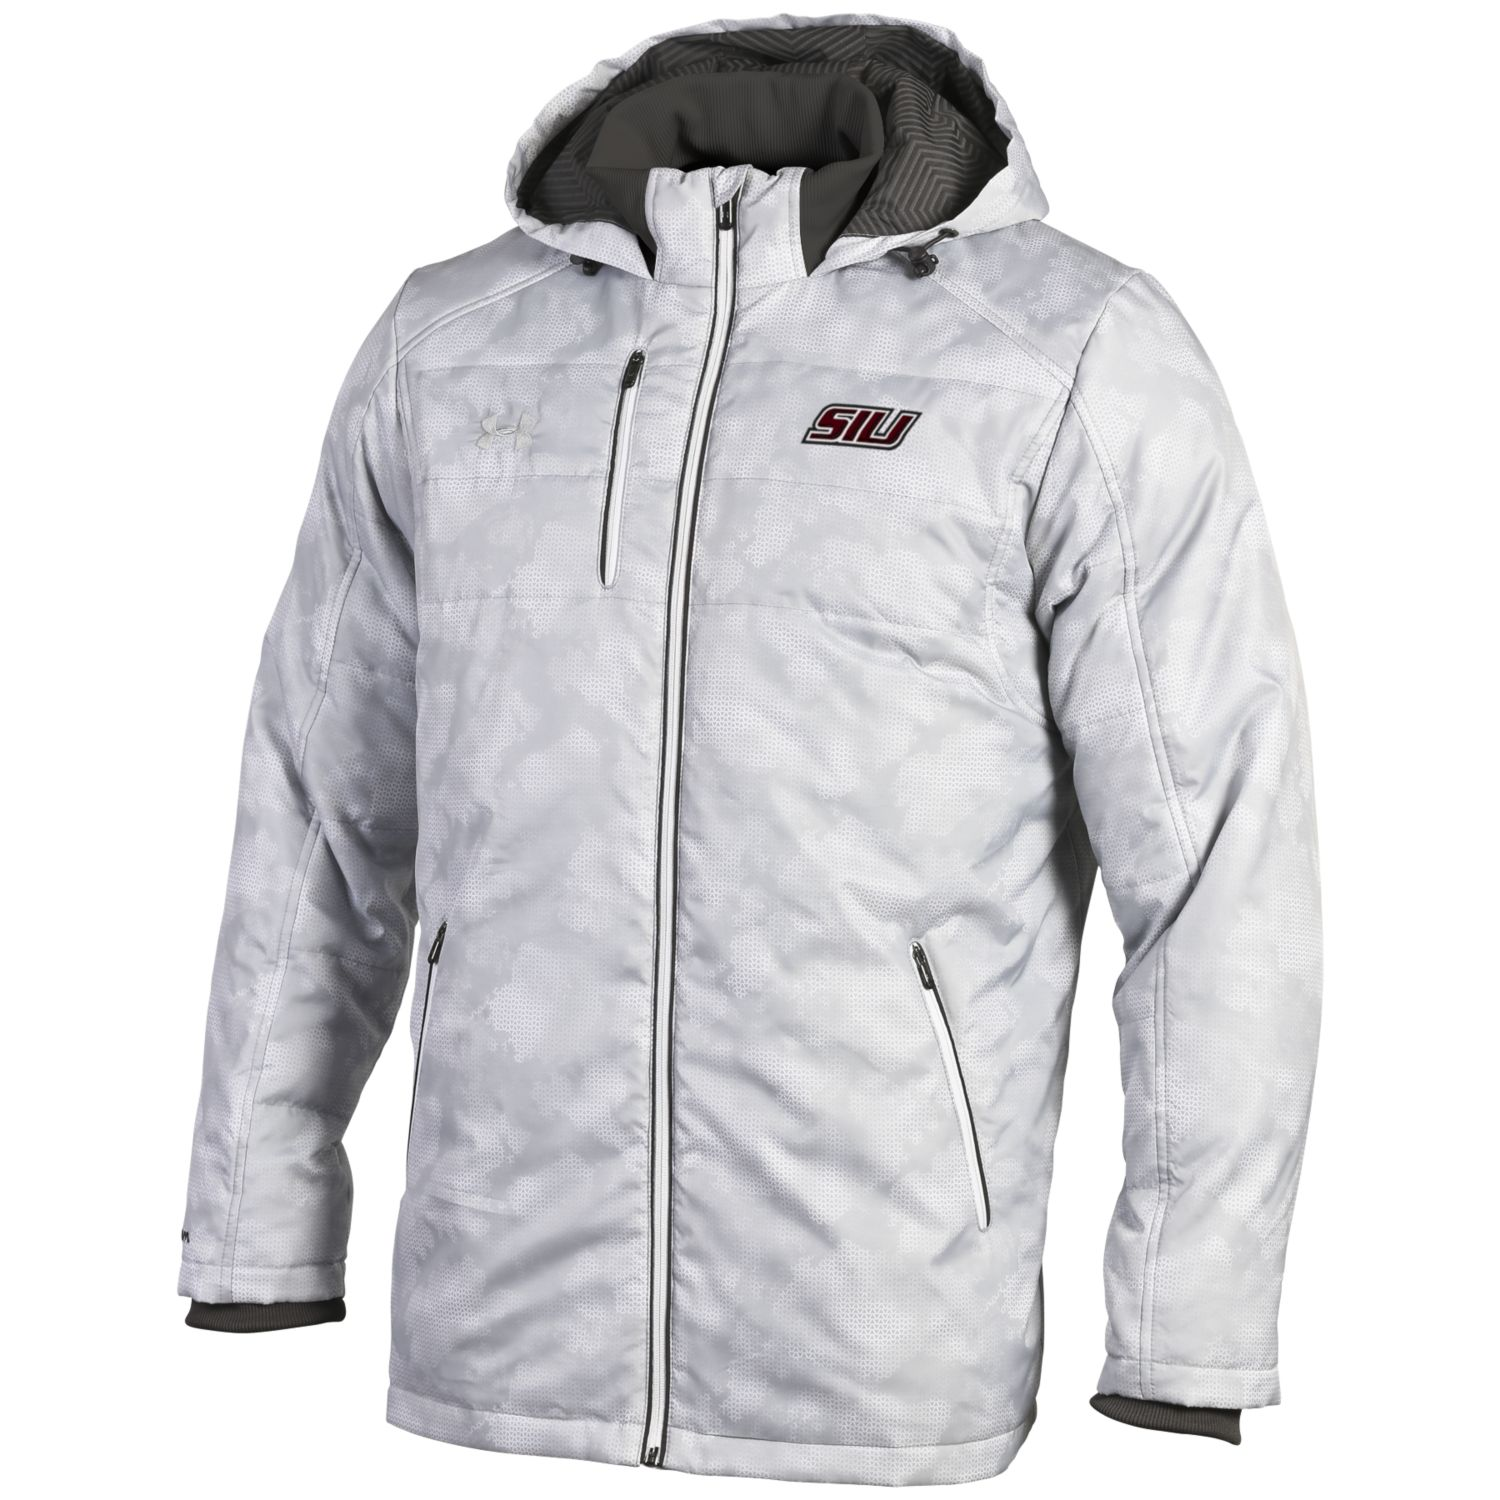 Image for the UNDER ARMOUR® SIU HEAVY DUTY F15 LIMITLESS STADIUM PARKA product